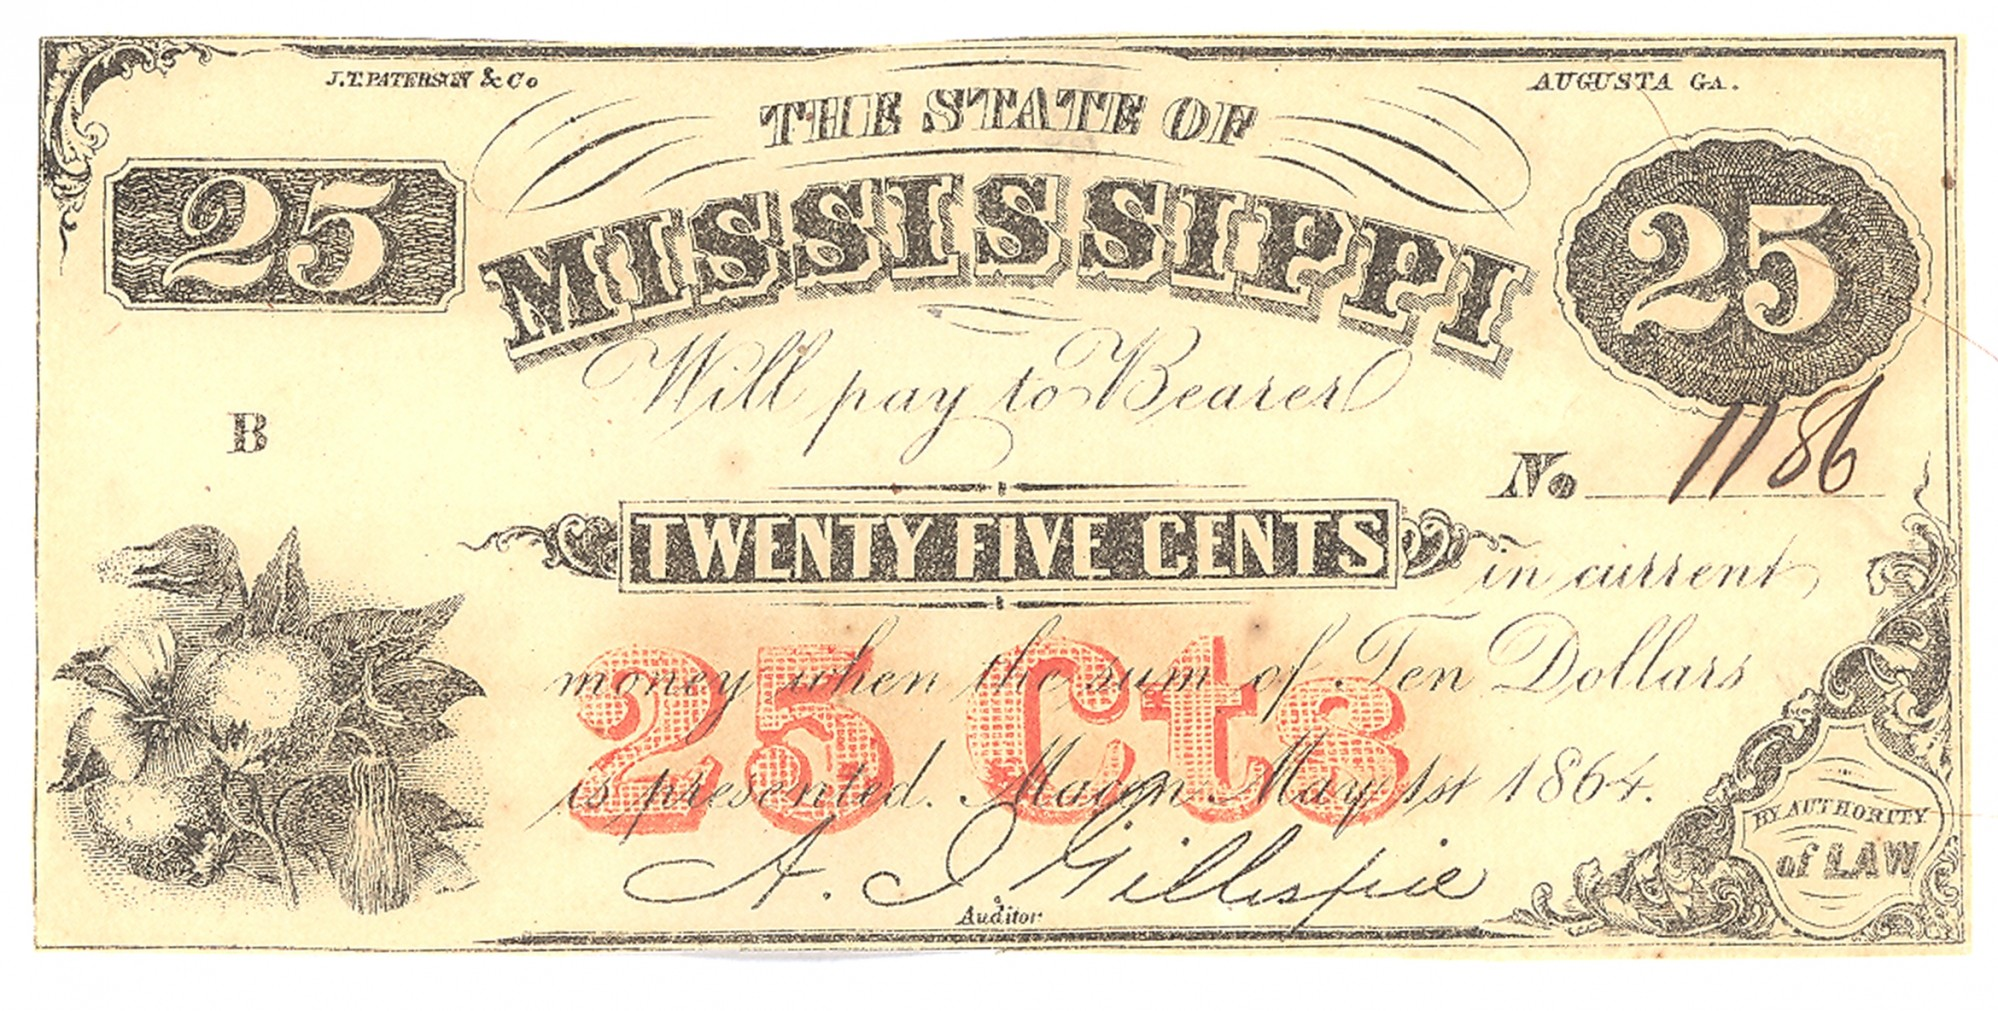 STATE OF MISSISSIPPI, MISSISSIPPI, $.25 NOTE